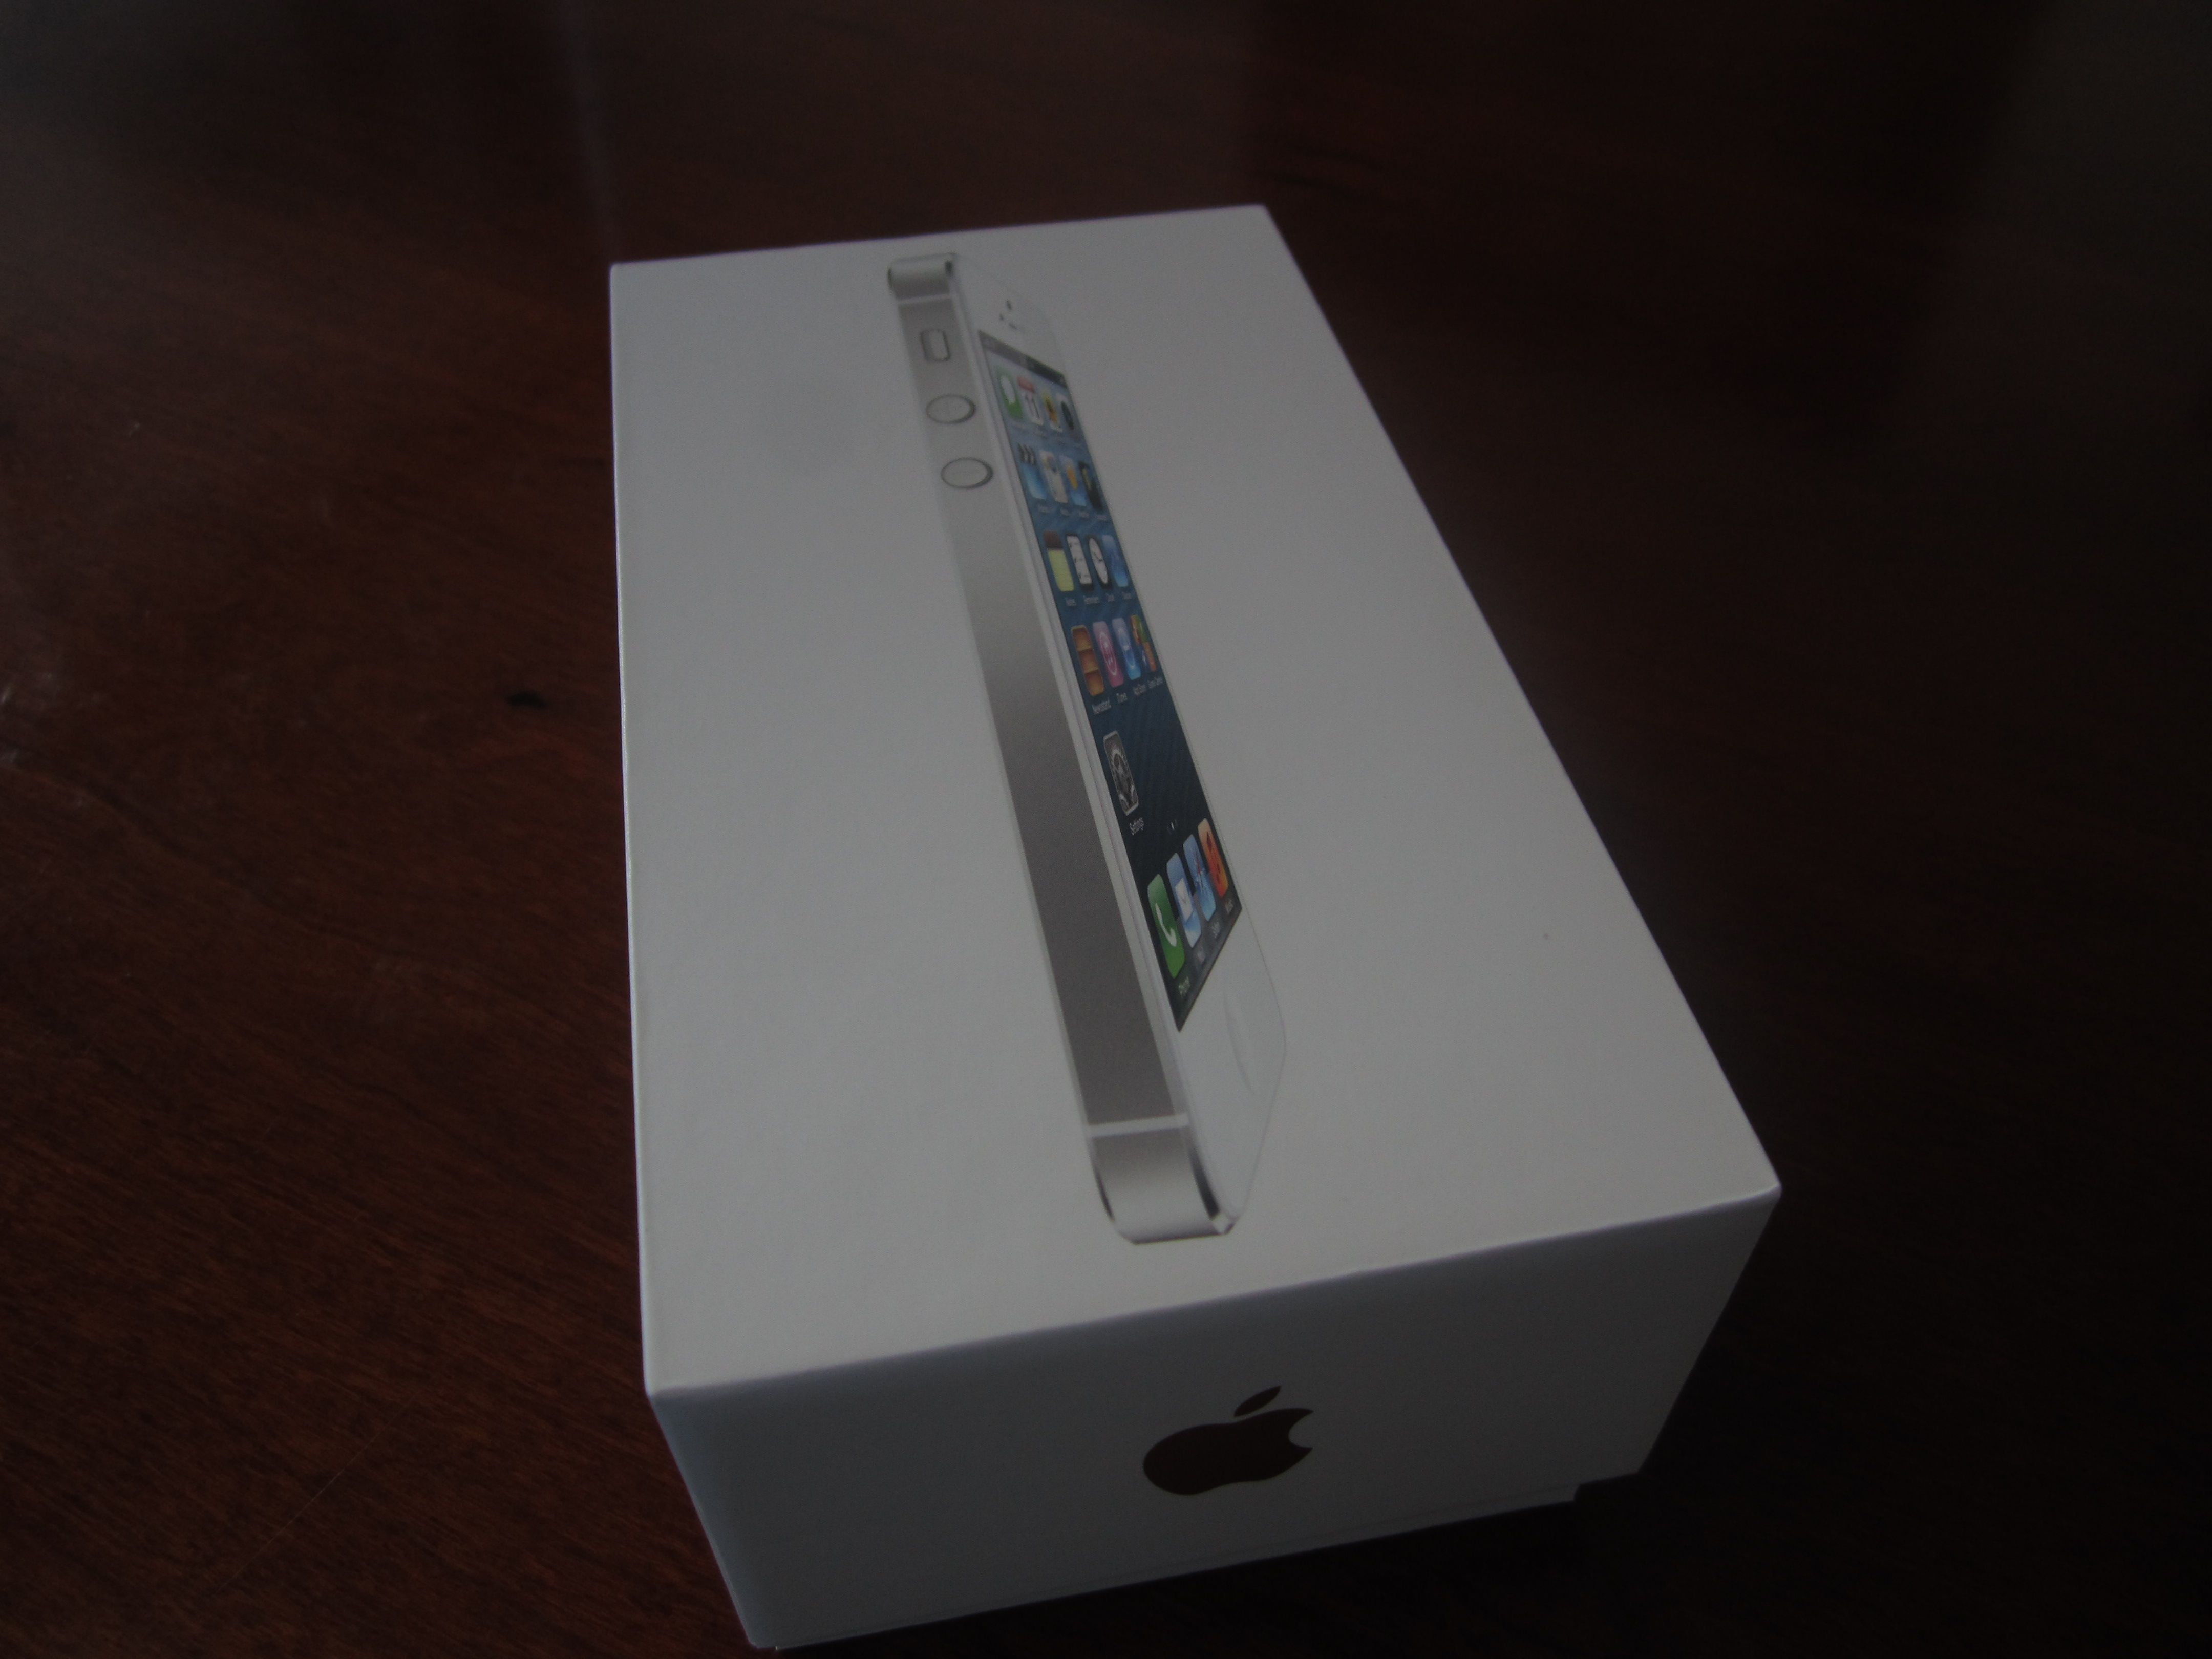 Drum roll please!! iPhone 5 unboxing